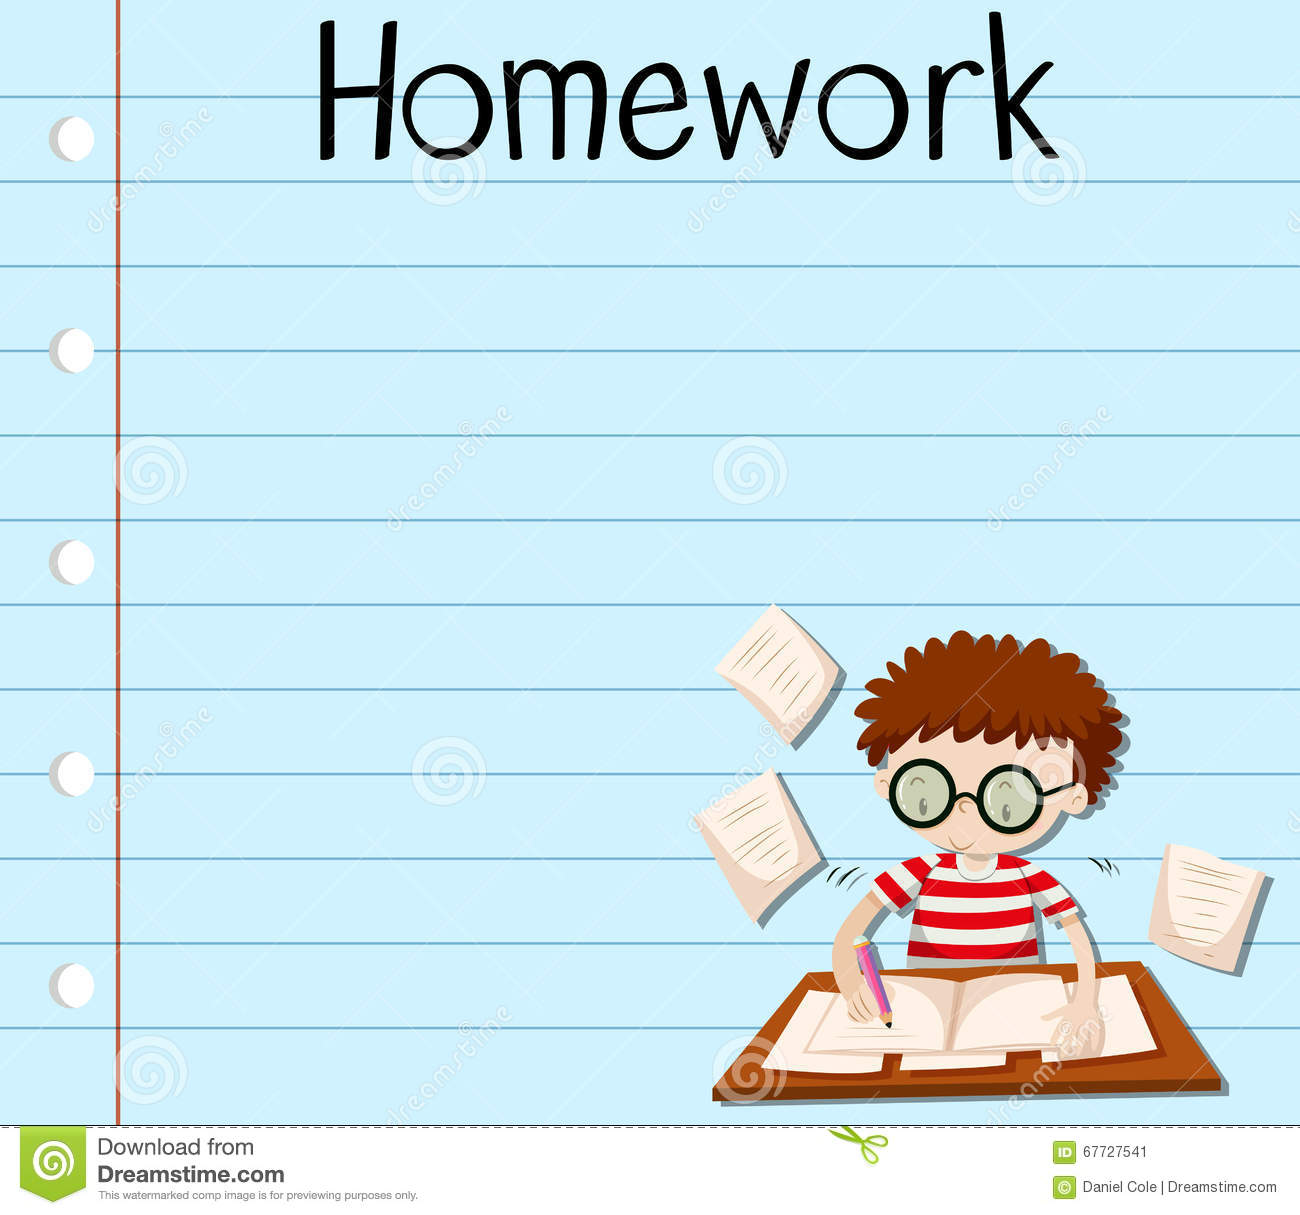 https://thumbs.dreamstime.com/z/paper-design-boy-doing-homework-illustration-67727541.jpg